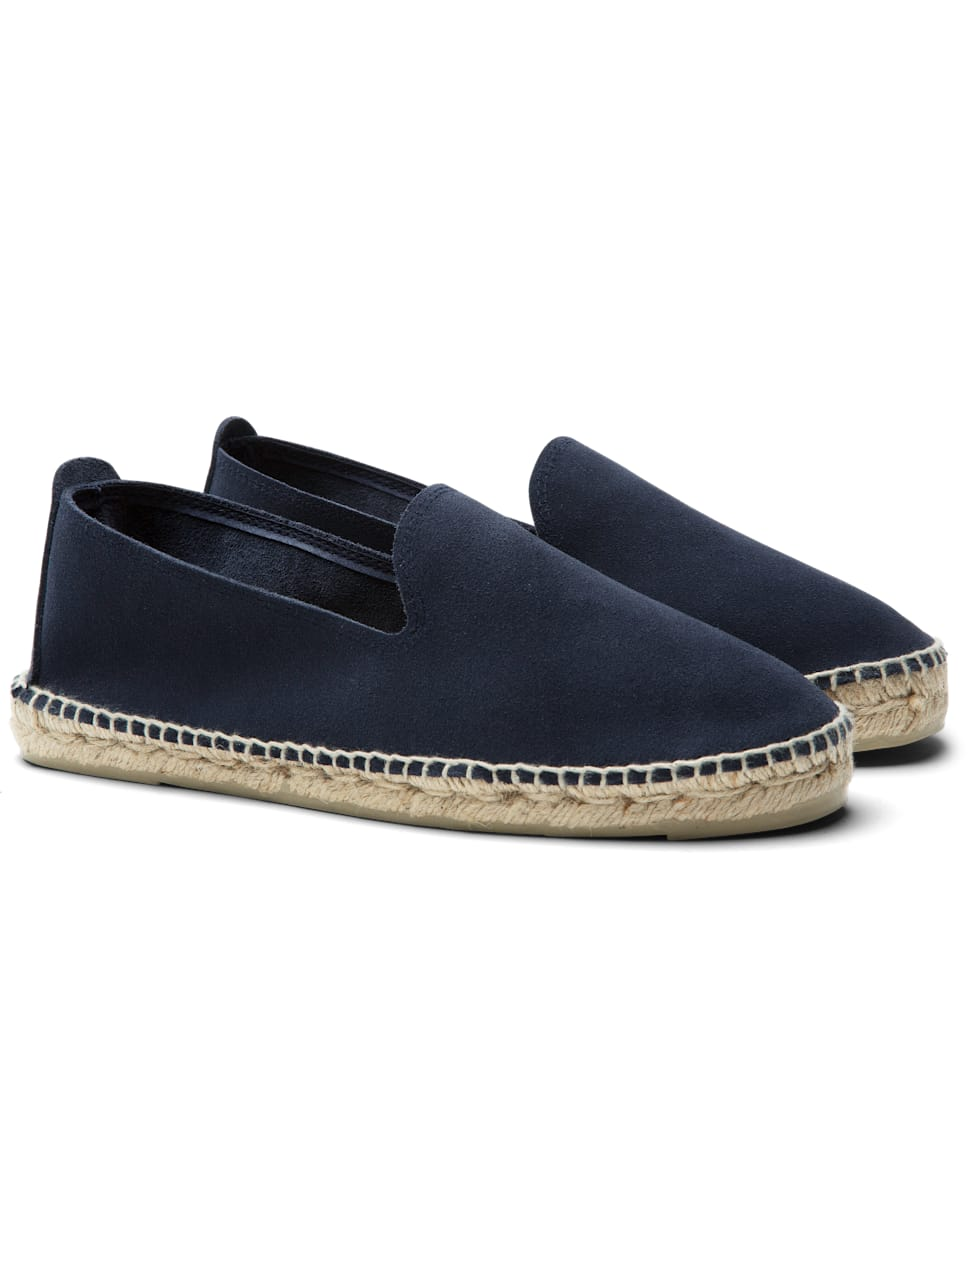 Blue Espadrilles by Suitsupply